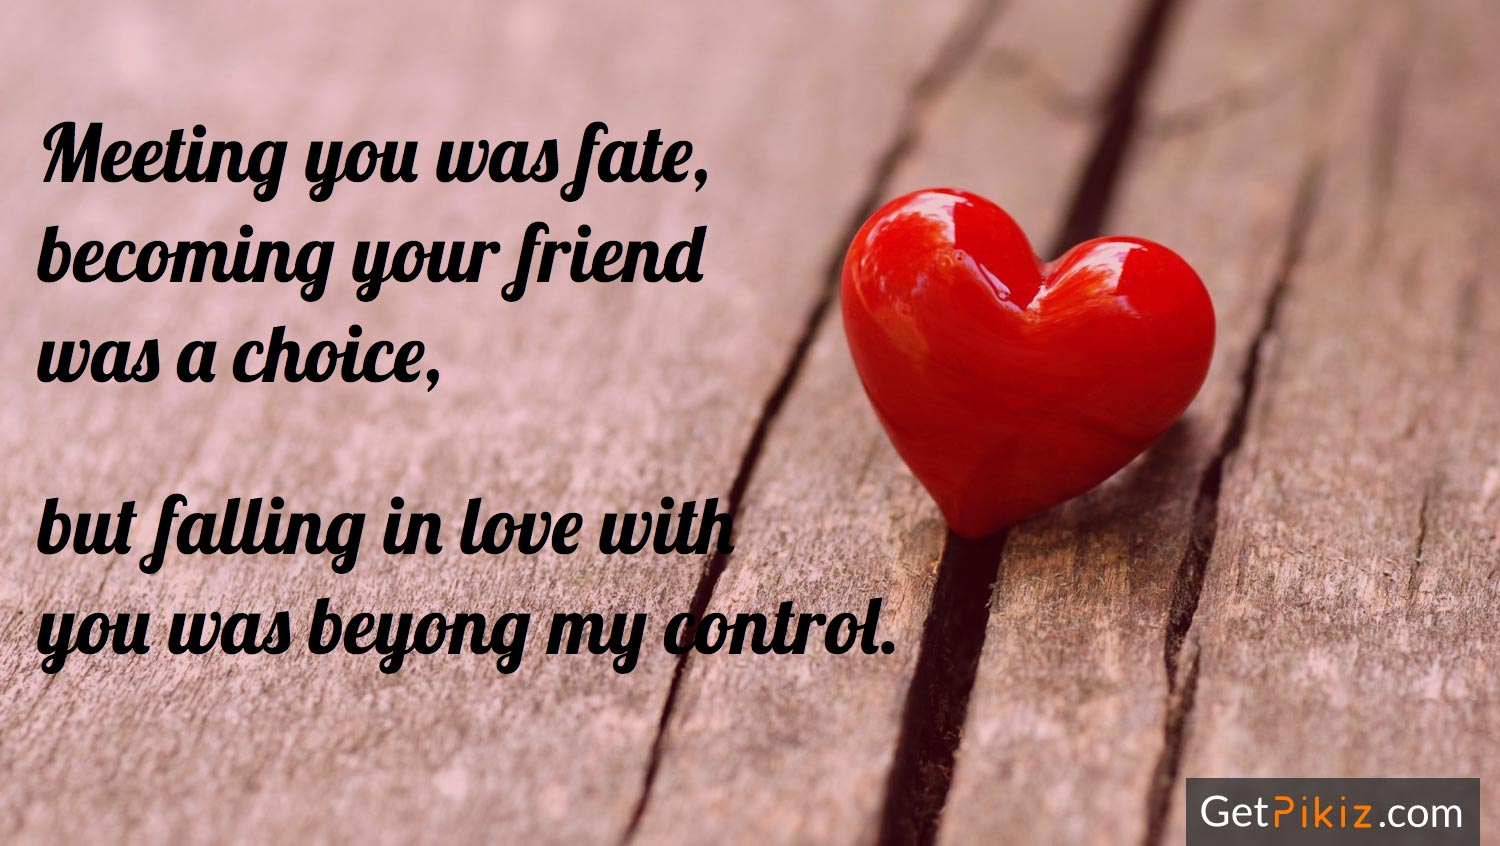 Meeting you was fate, becoming your friend was a choice, but falling in love with you was beyong my control.